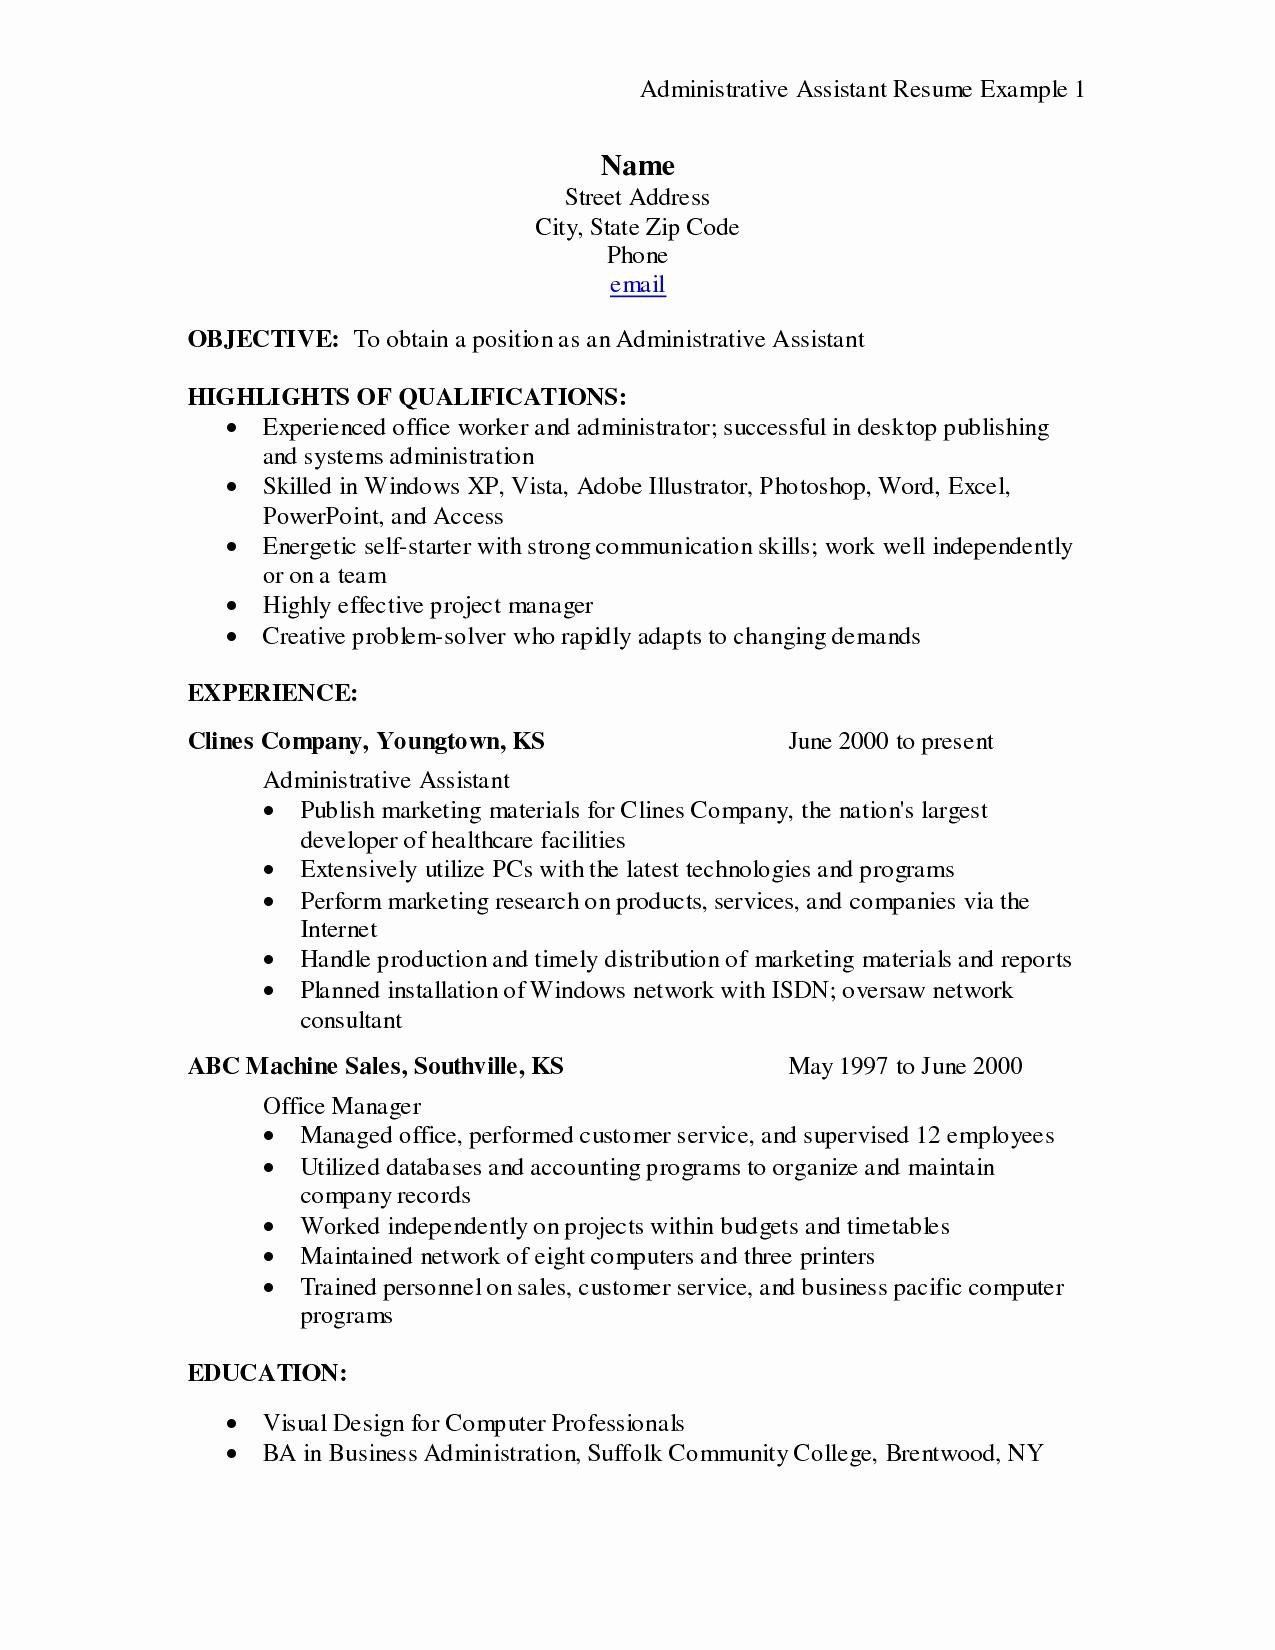 medical administrative assistant resume office manager examples help reviews Resume Office Manager Resume Examples 2020